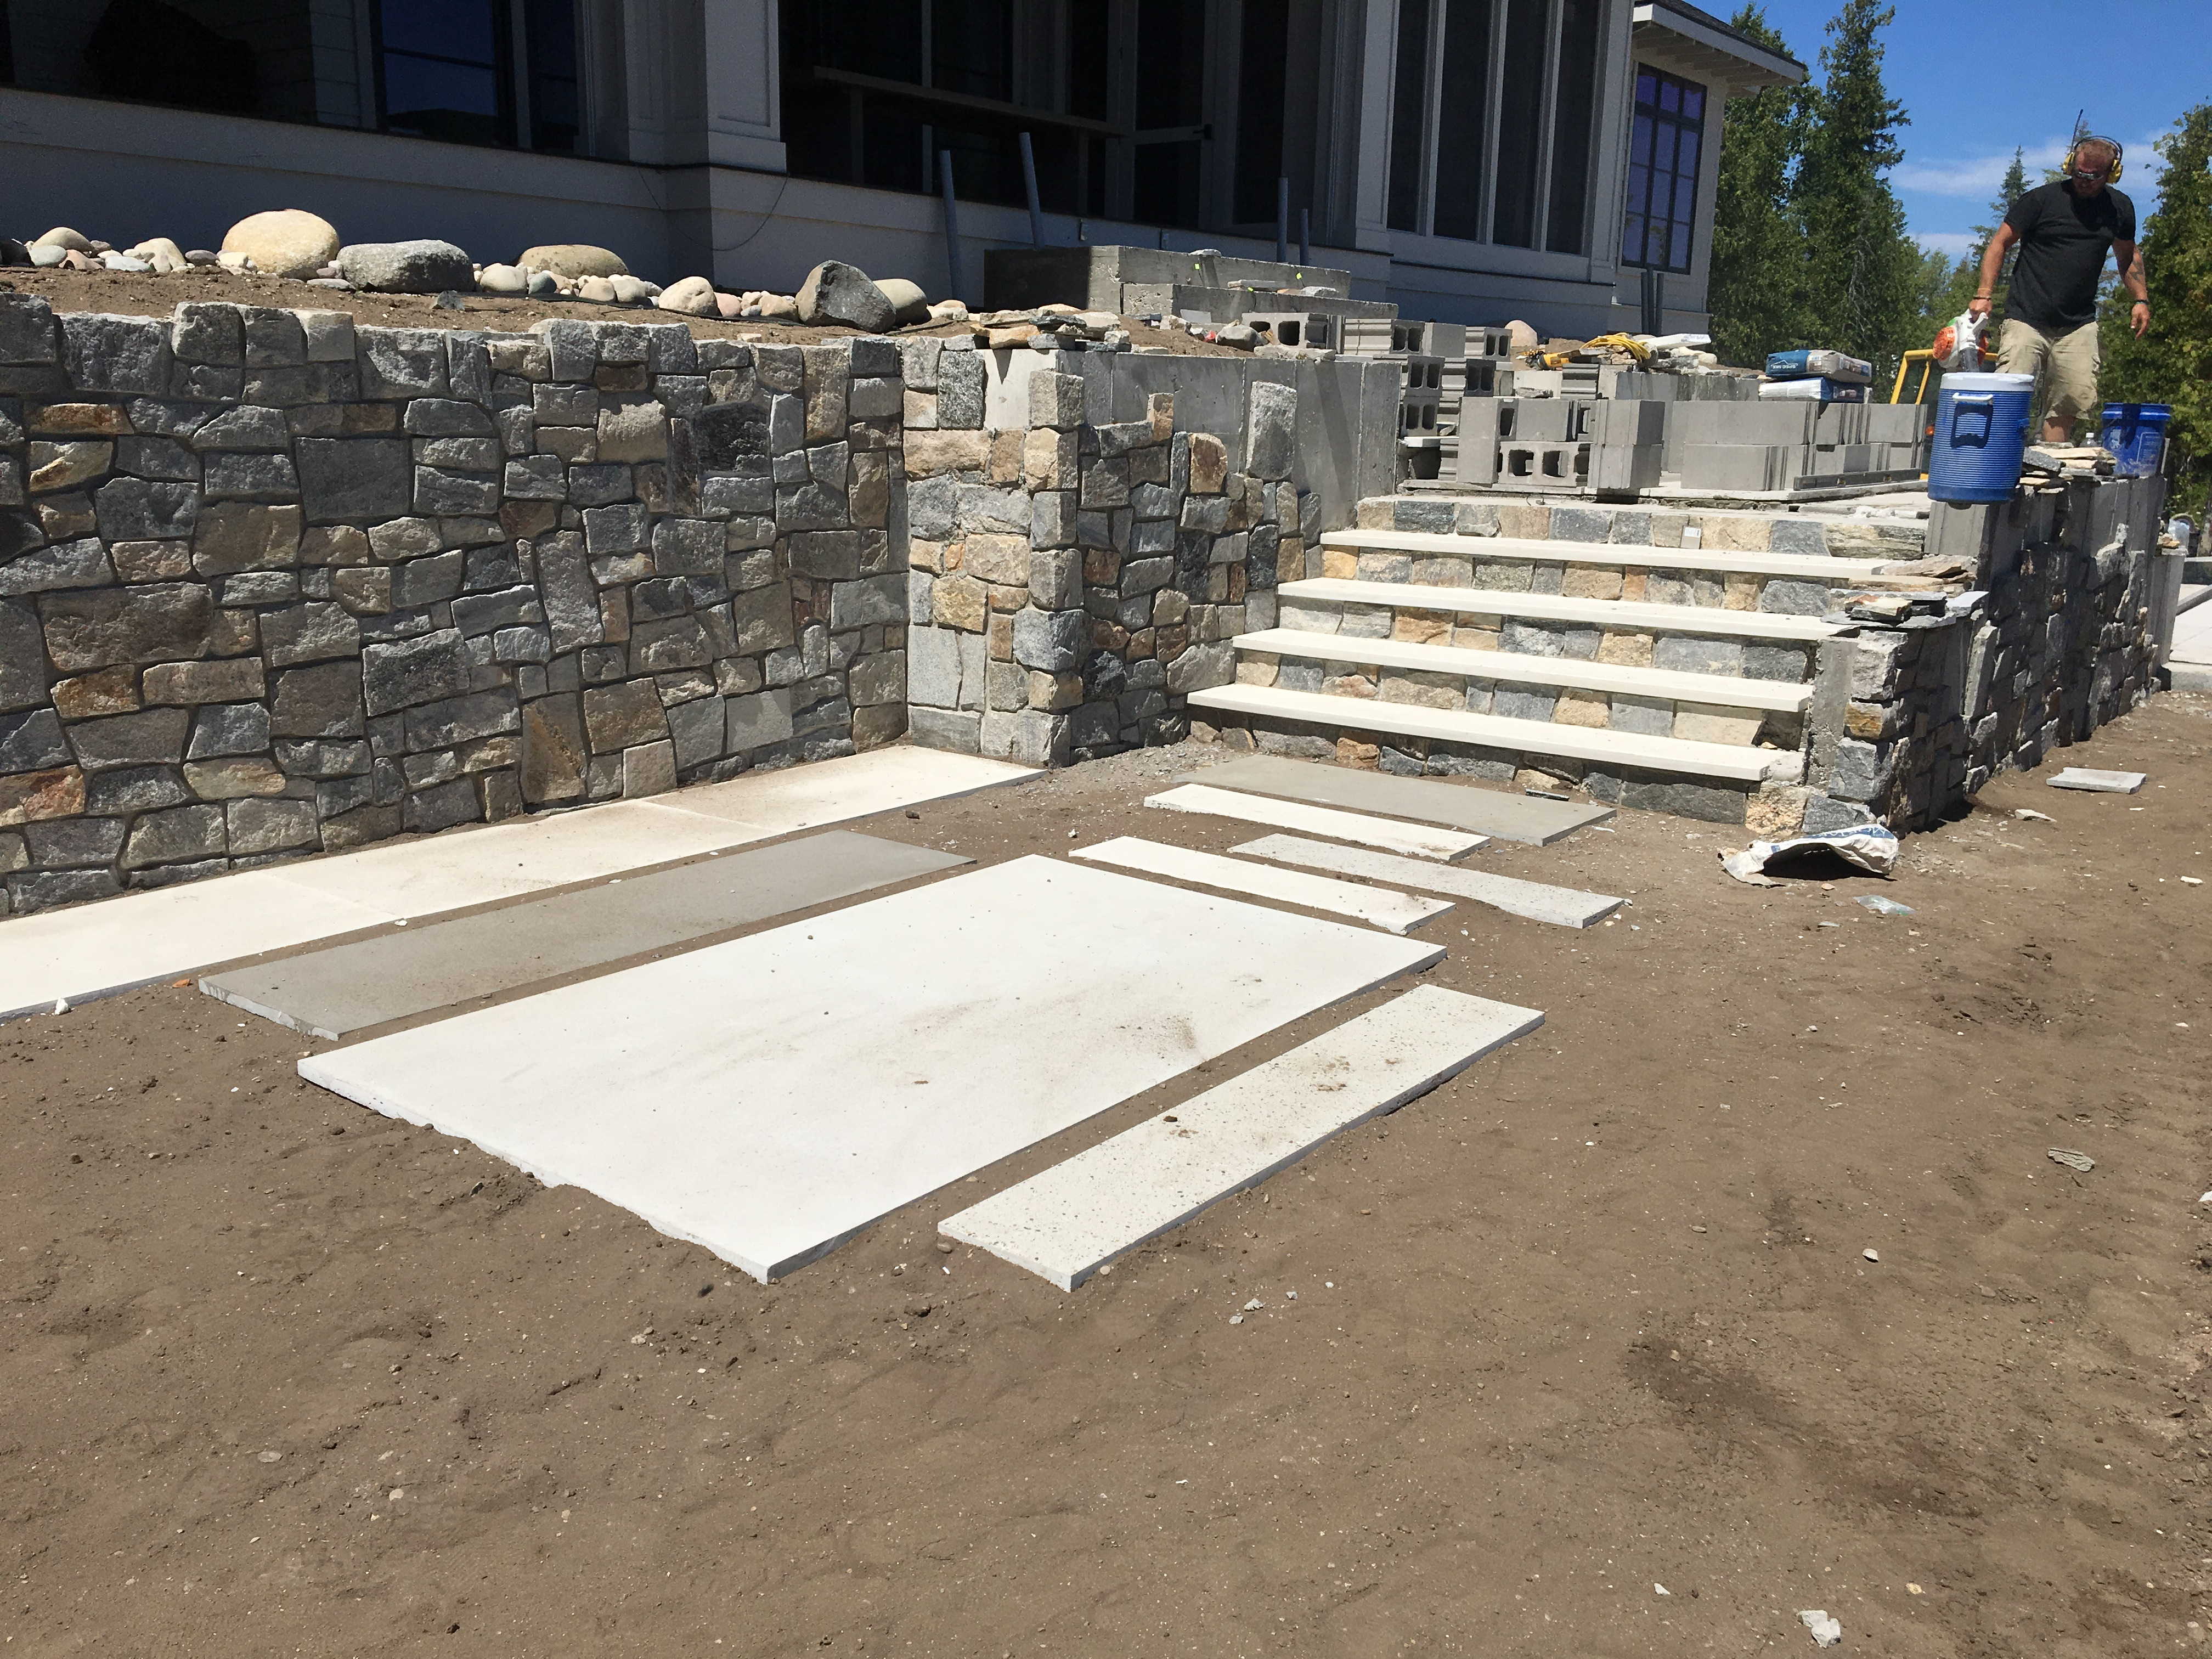 installation in process uses stone to beautifully hide concrete retaining wall